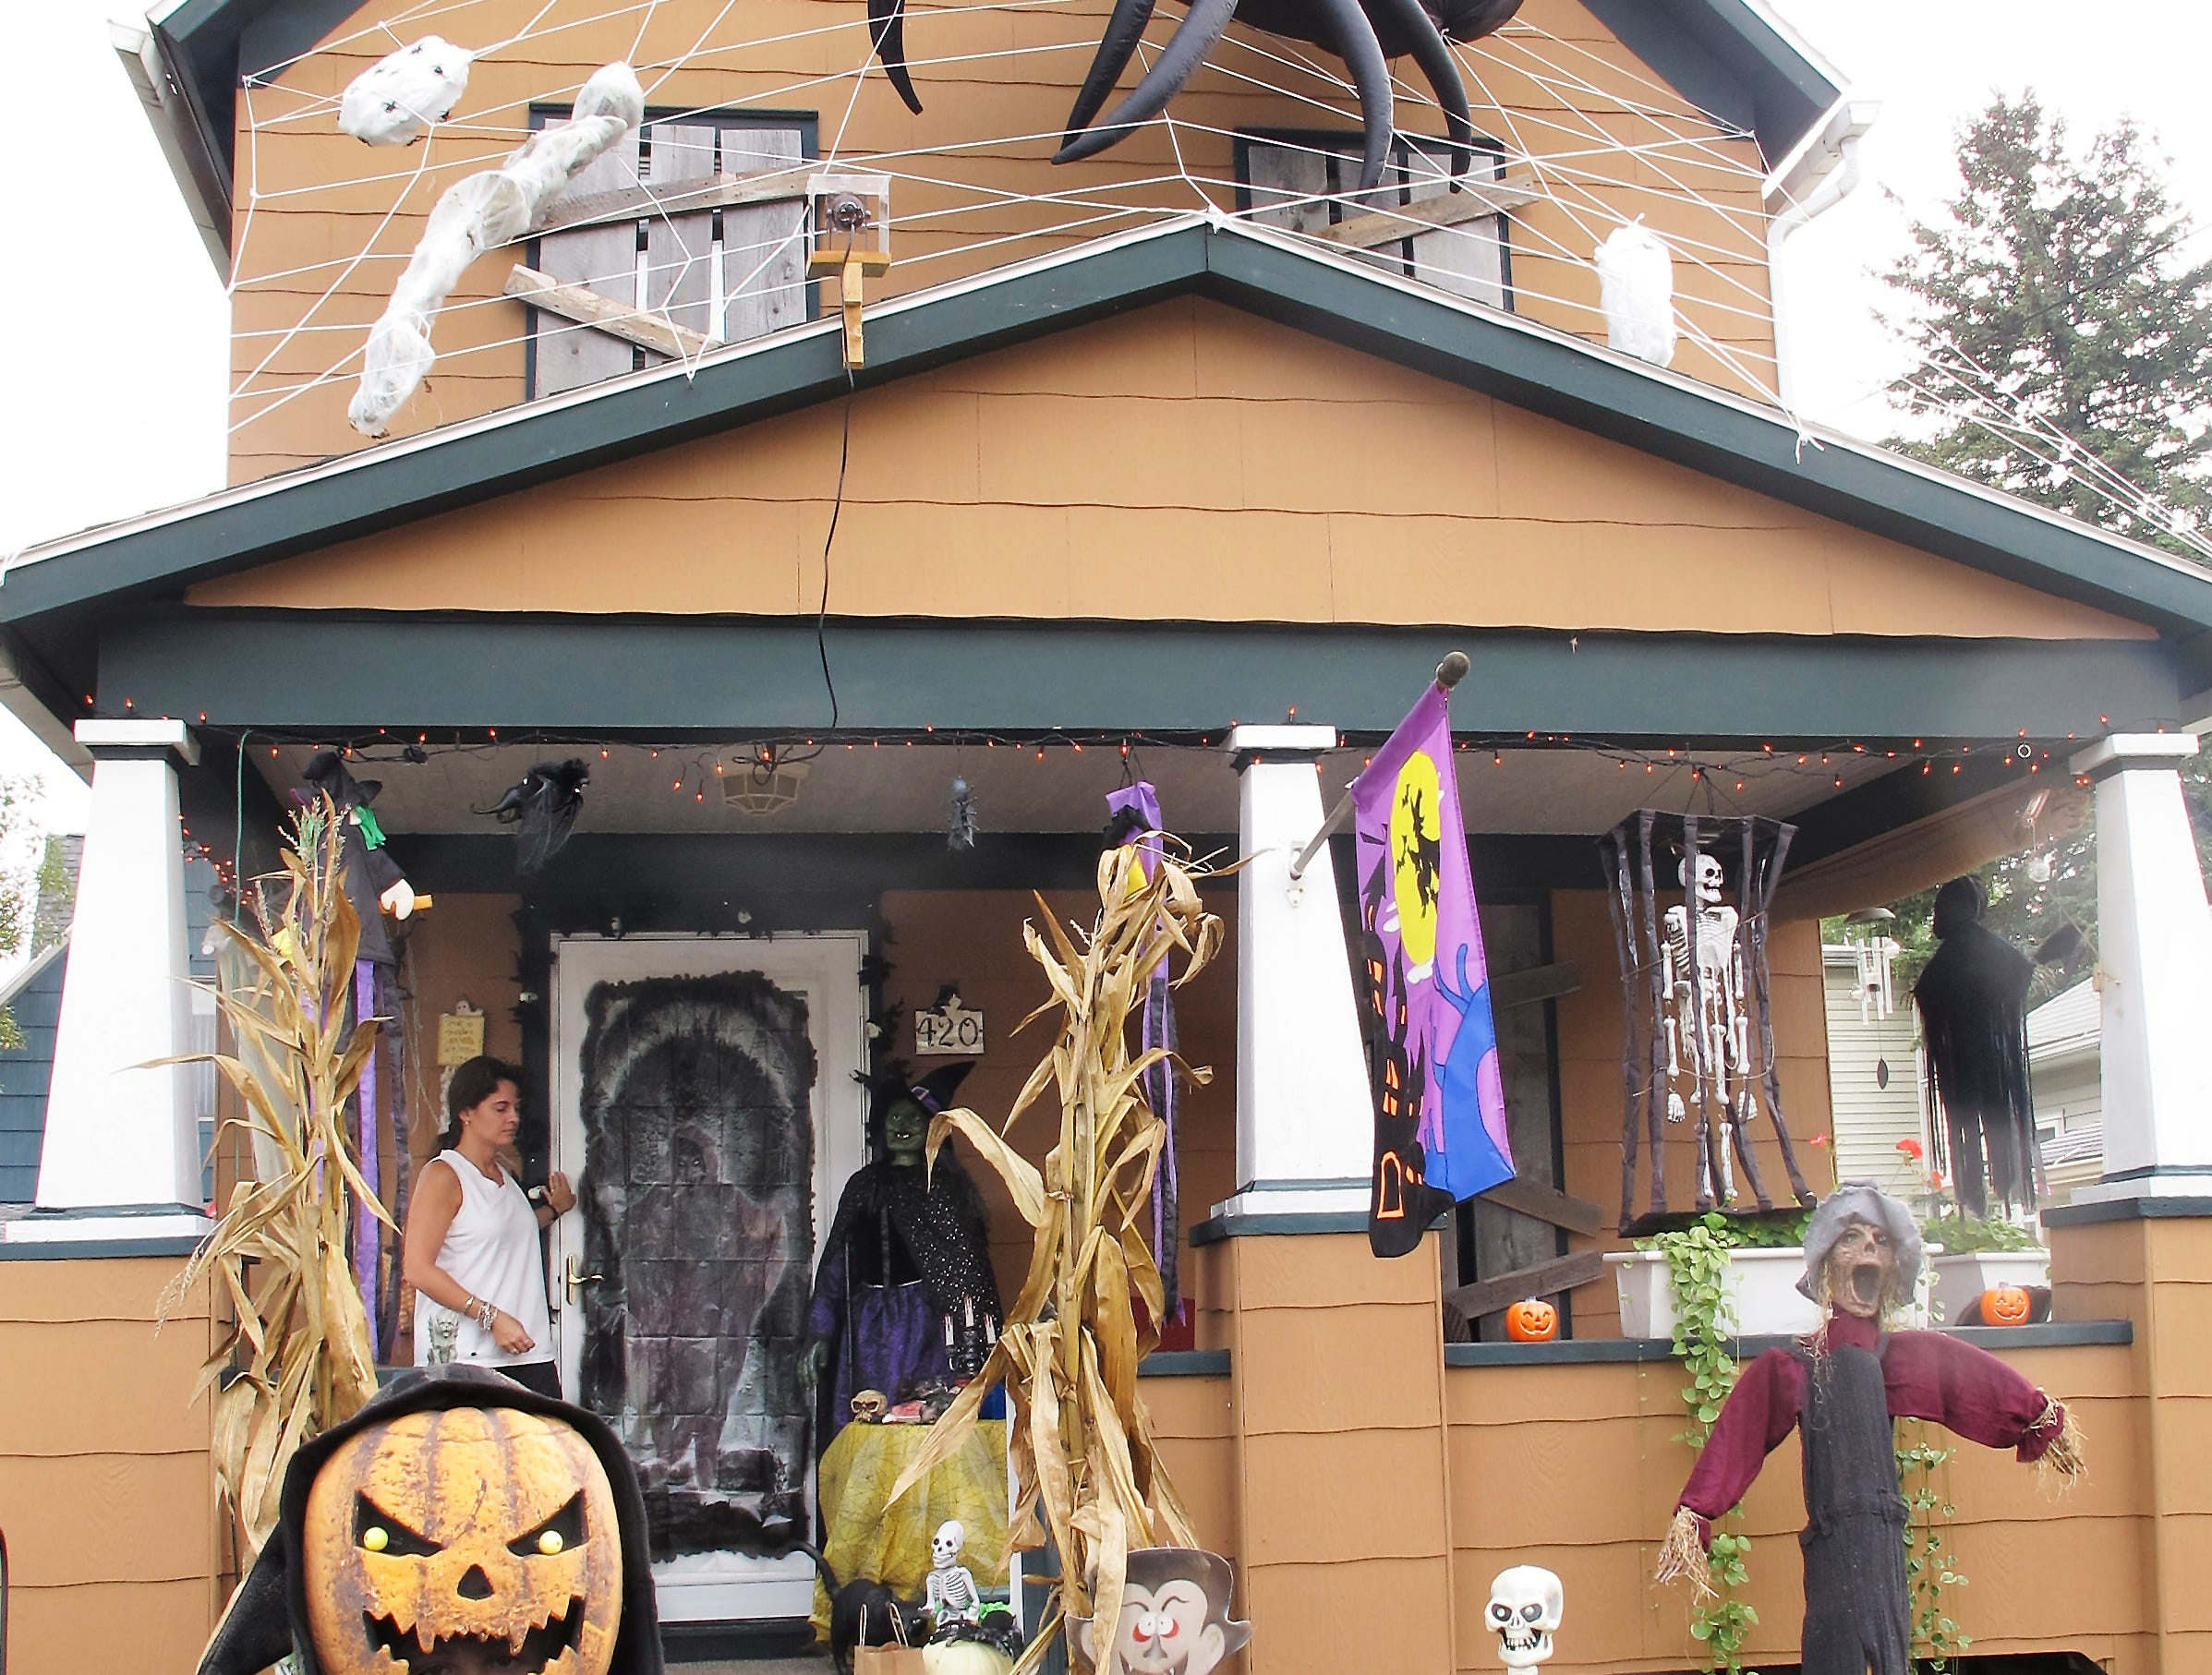 2010: Chase Miller, 9, dressed as the Grim Reaper, stands in front of the Halloween display at his home on East Third Street in Corning. His mother Amy is standing on the porch.